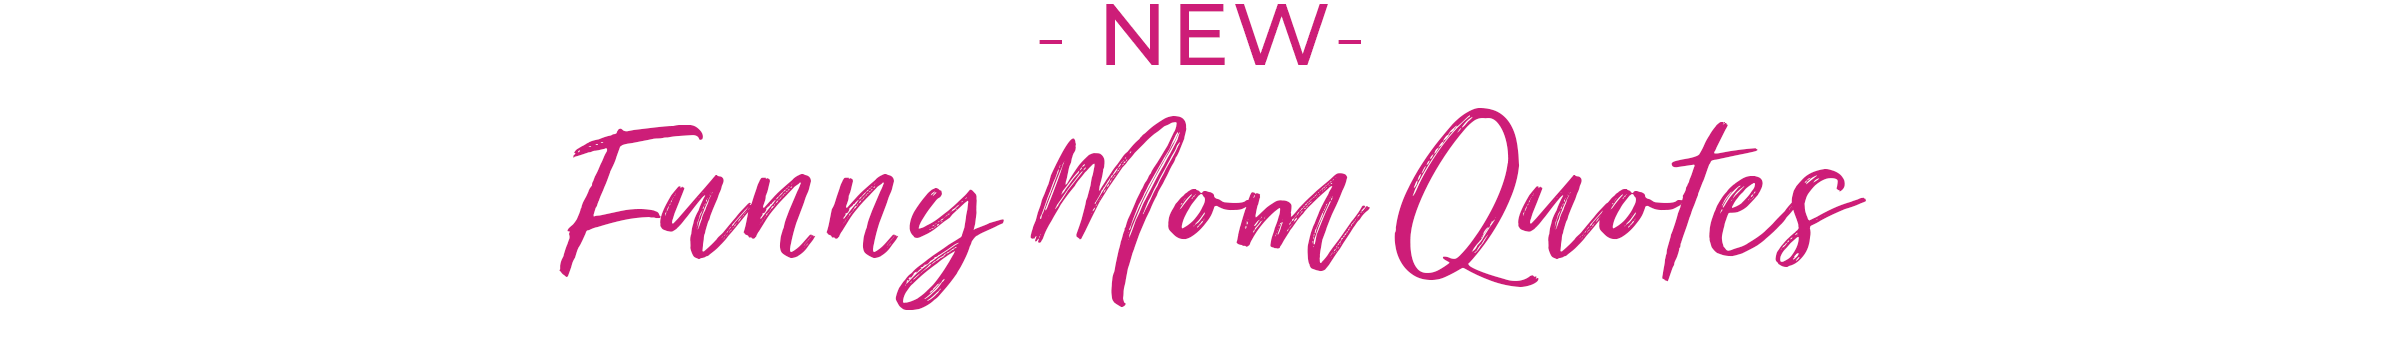 New funny mom quotes - smile, shop, then share on Instagram, Facebook, Pinterest and Twitter!